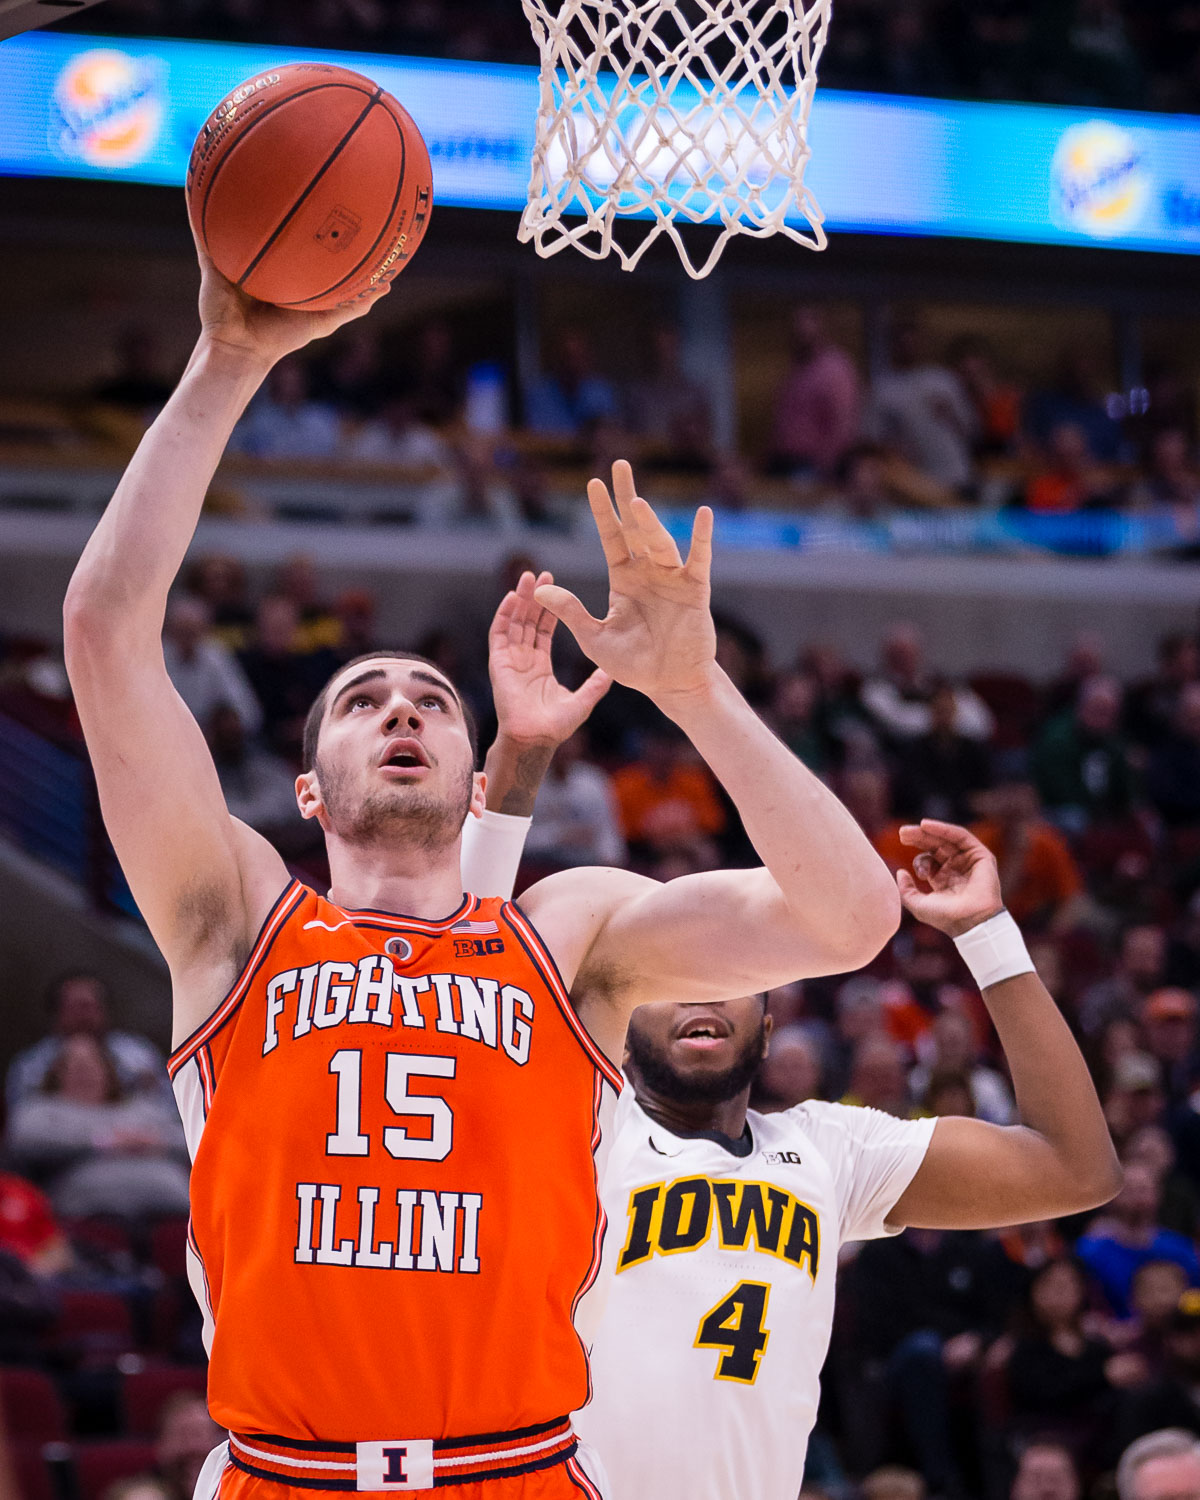 Illinois+forward+Giorgi+Bezhanishvili+%2815%29+goes+up+for+a+layup+during+the+game+against+Iowa+in+the+second+round+of+the+Big+Ten+Tournament+at+the+United+Center+on+Thursday%2C+March+14.+The+Illini+lost+83-62.